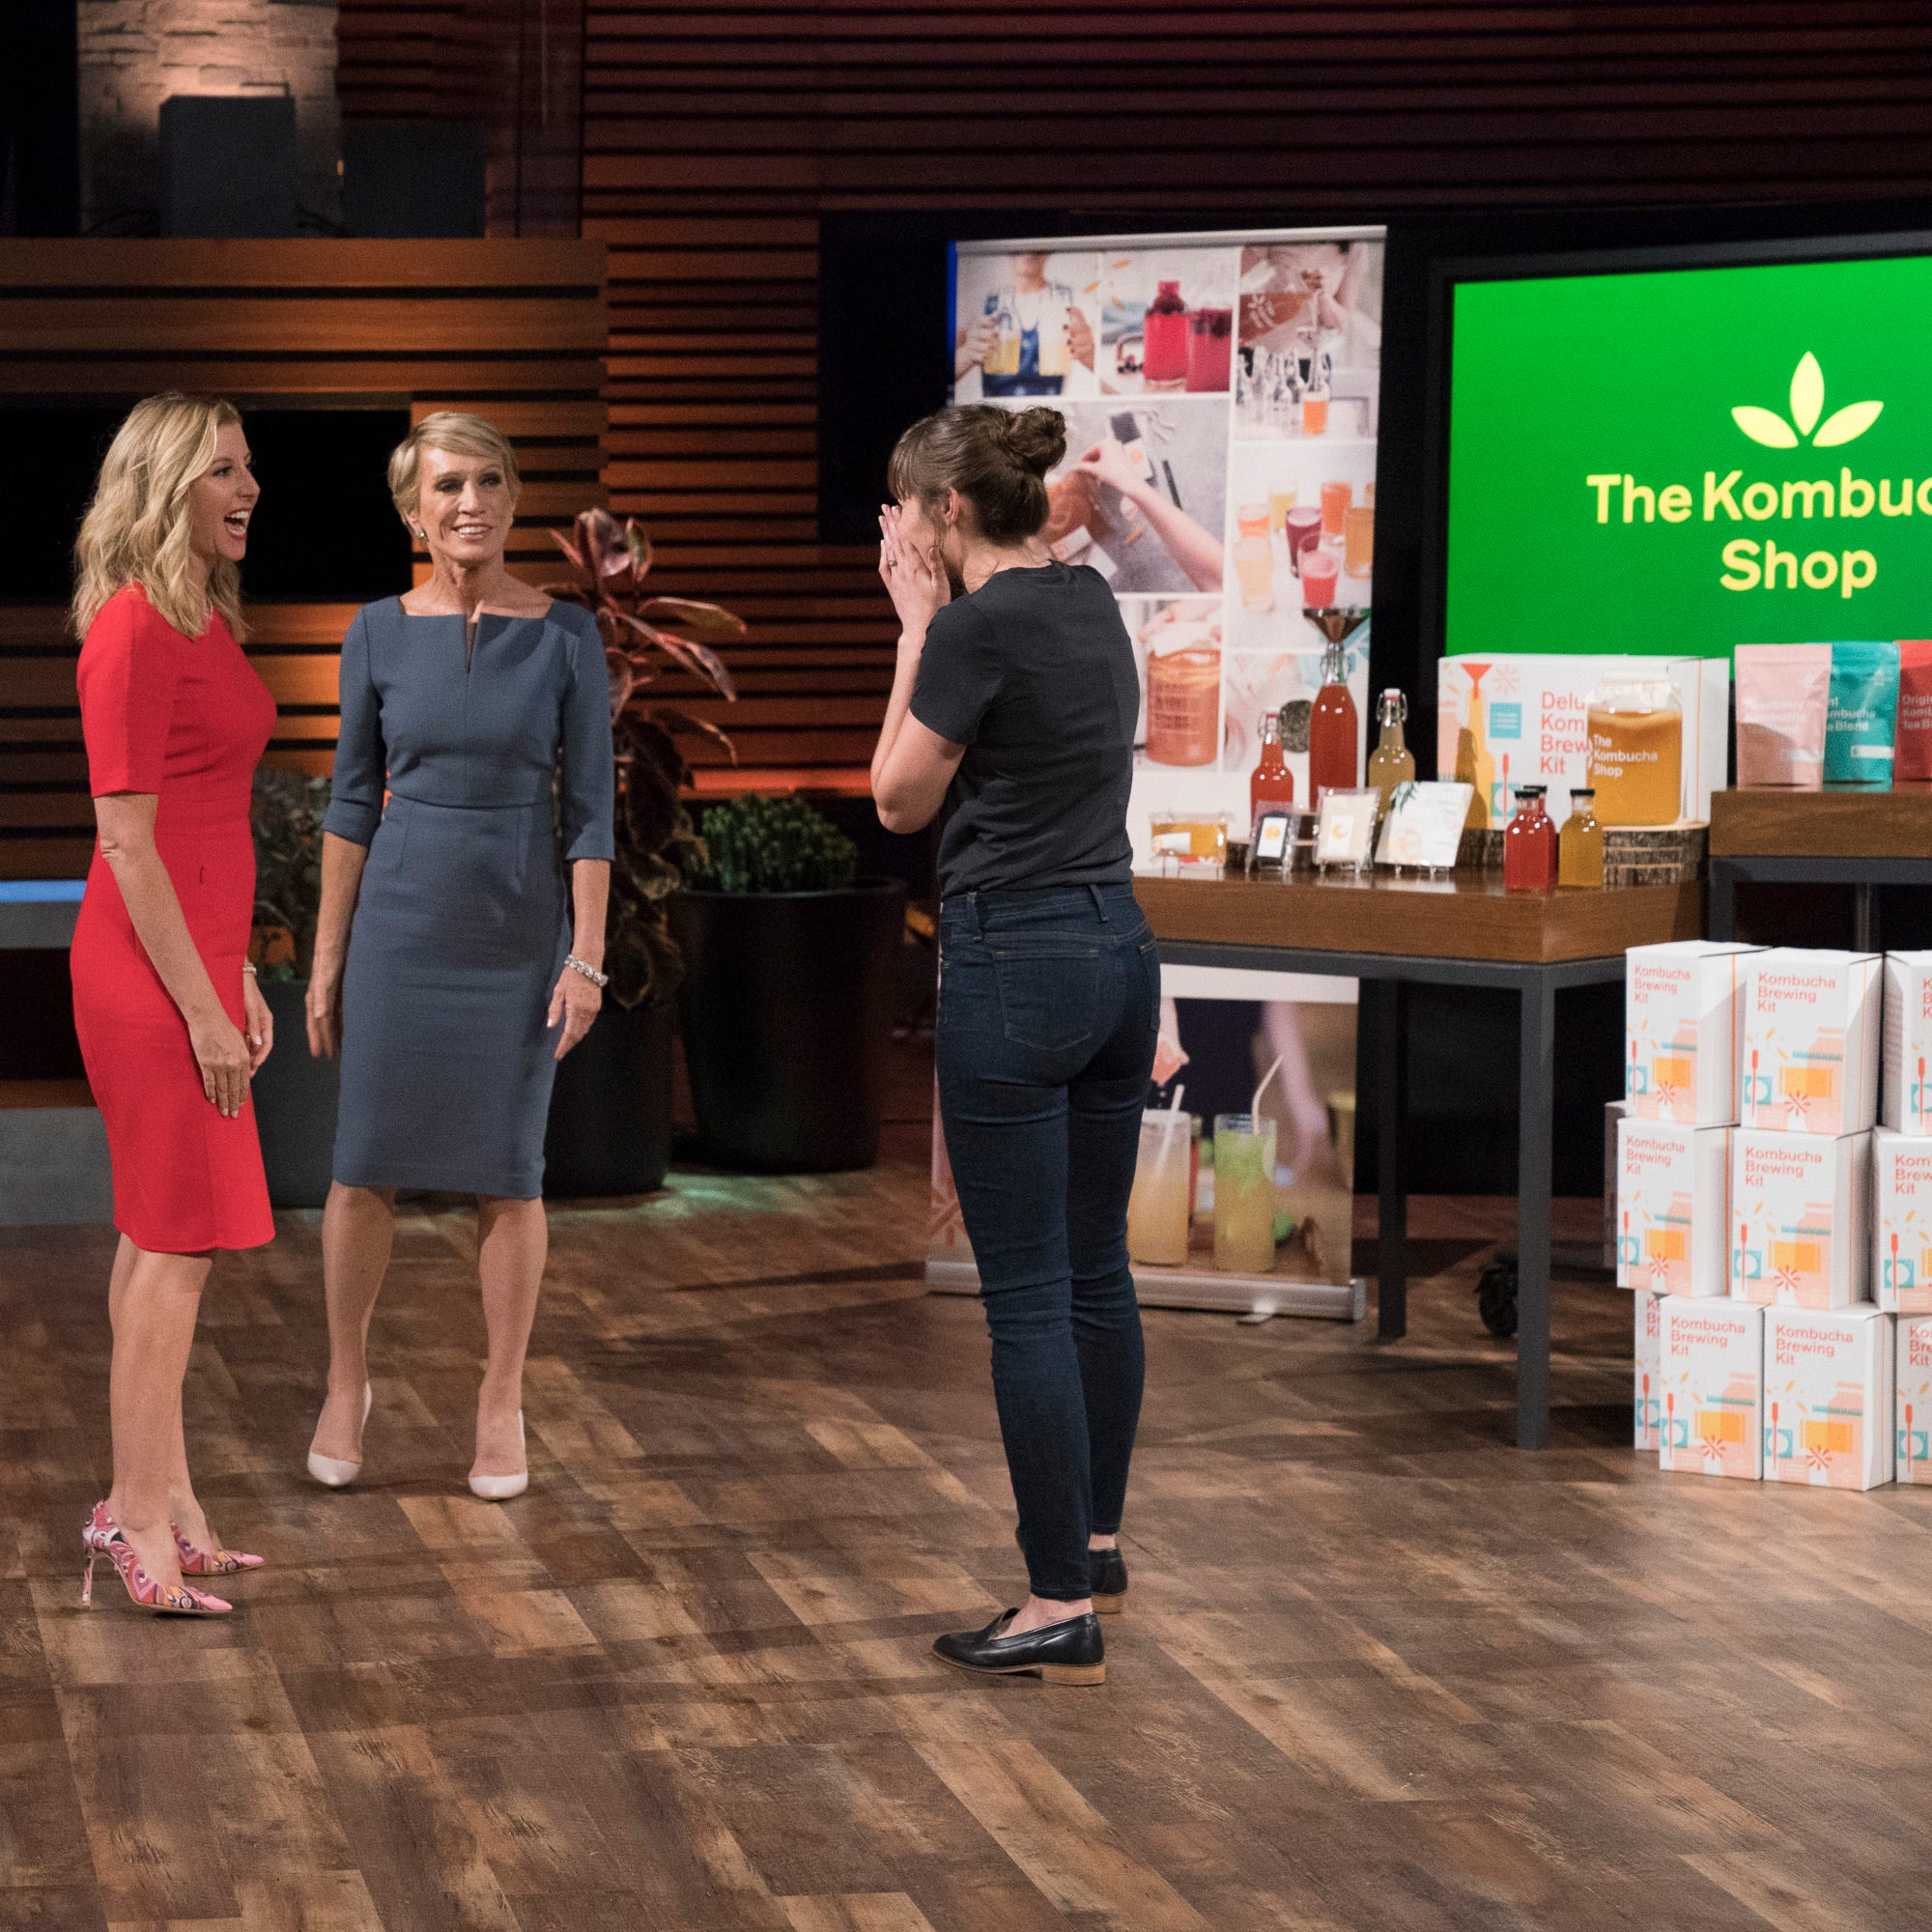 How a Madison entrepreneur grew The Kombucha Shop from a storage closet to a 'Shark Tank' deal